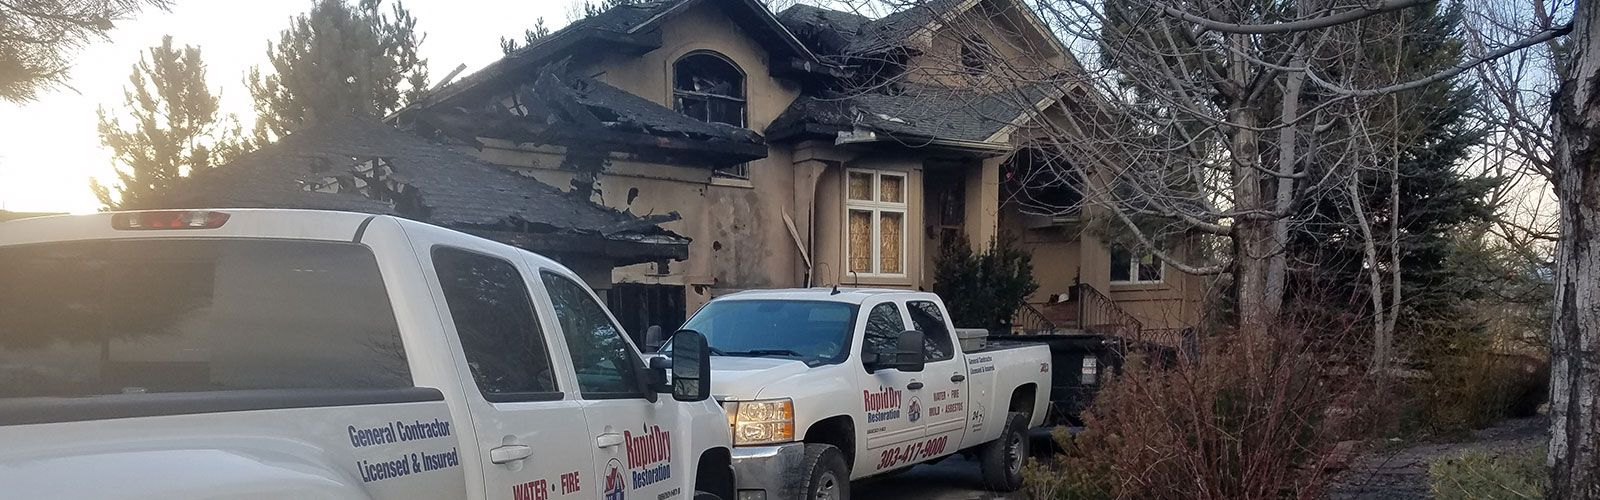 House in Colorado being restored from fire damage by Rapid Dry Colorado.